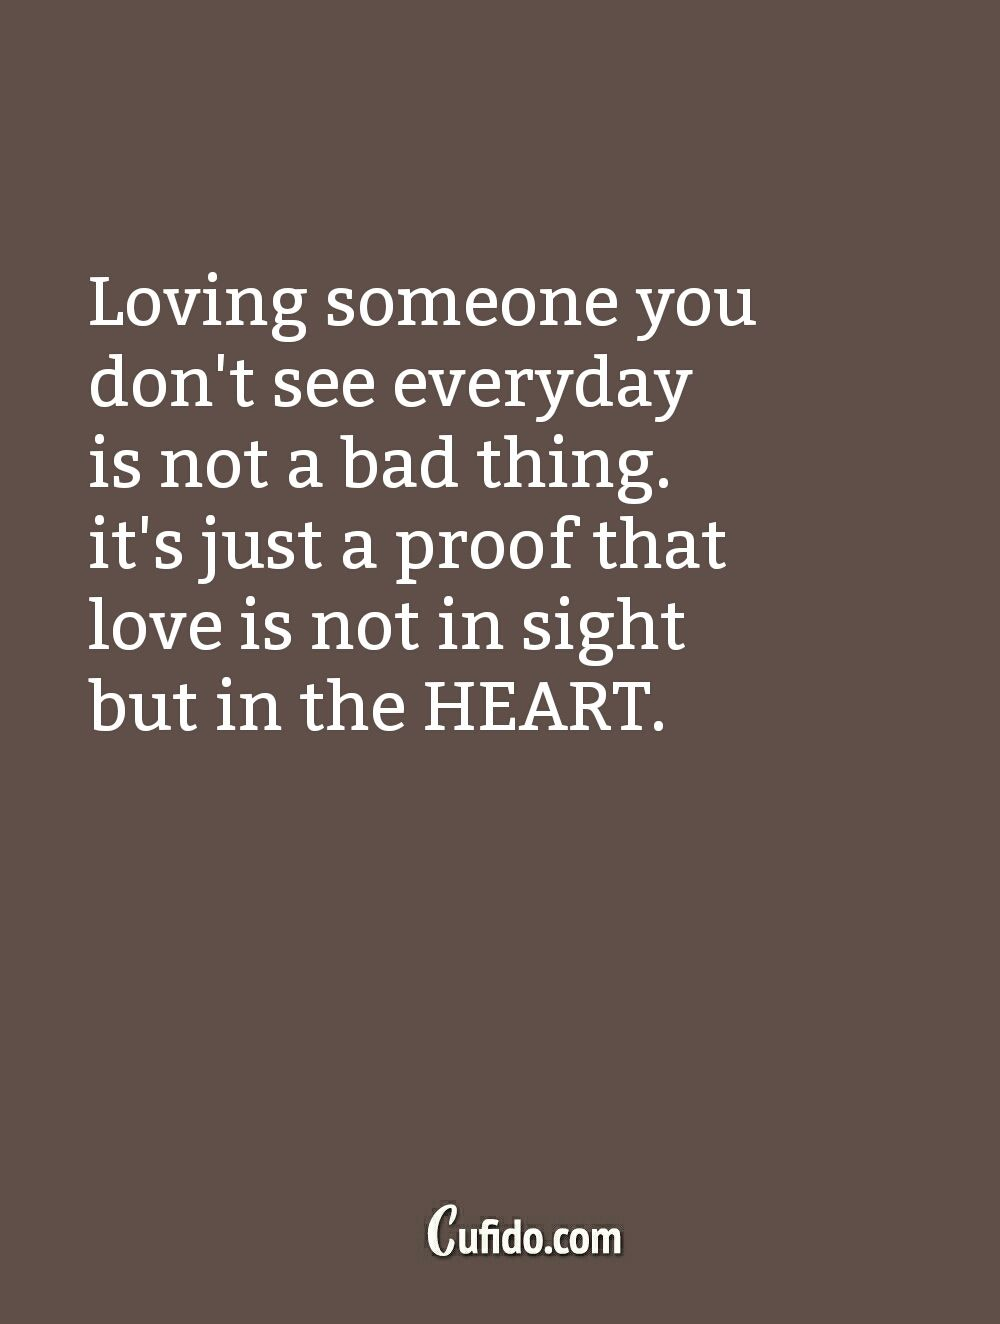 Cufidos quotes i need to remember this but for how long can you love someone that isnt yet yours